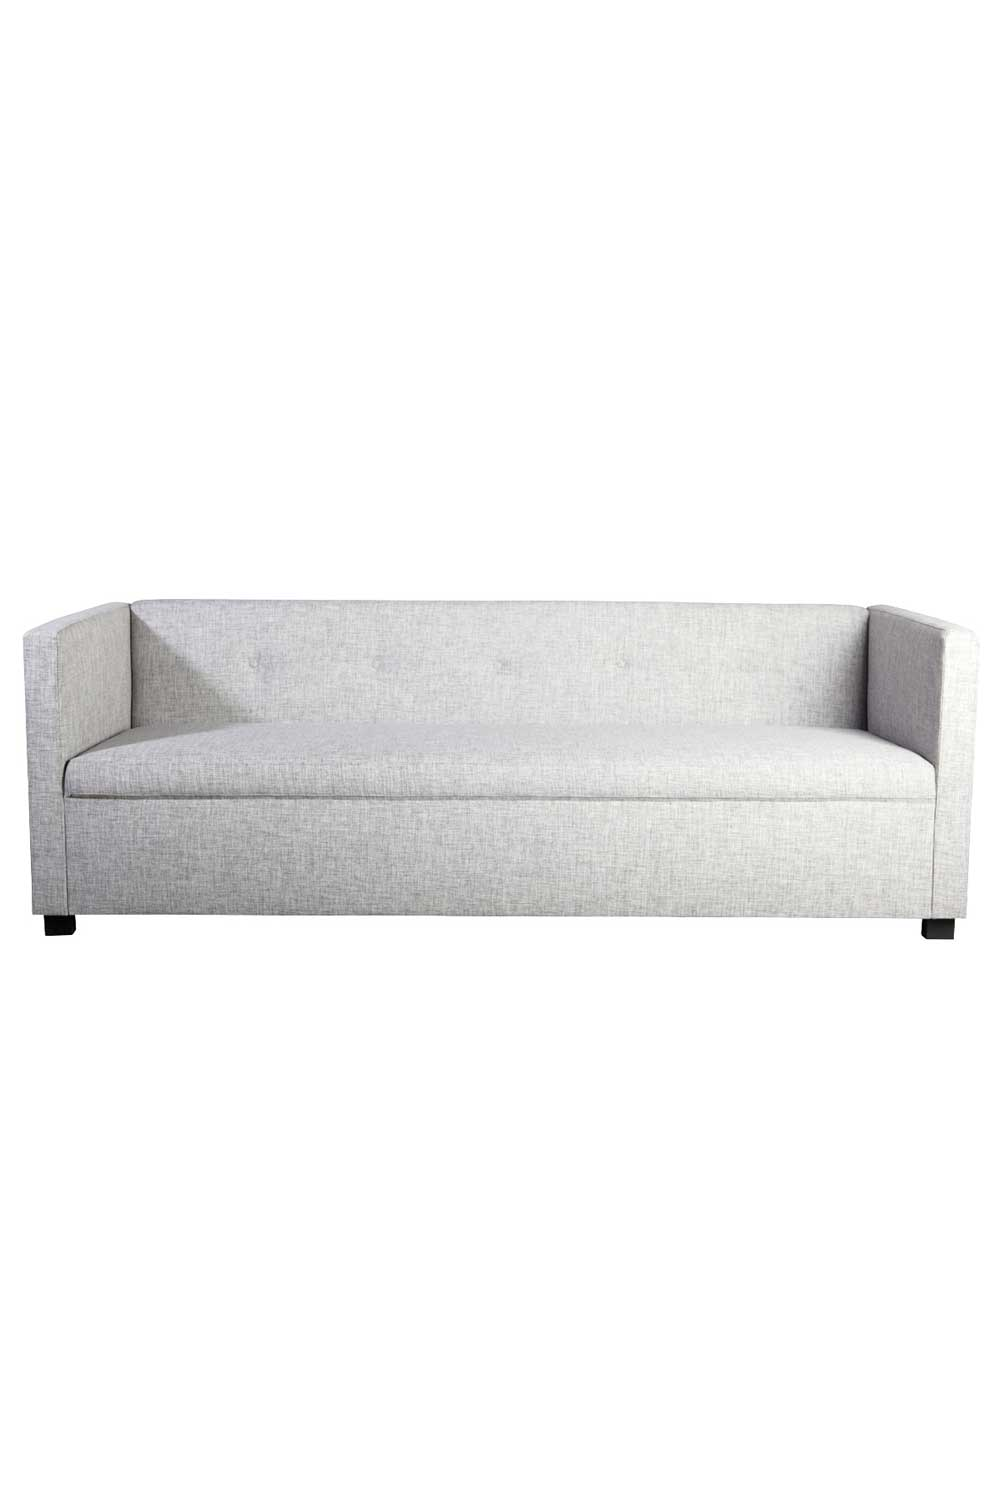 House doctor botton sofa - hvid polyester, 3 pers. sofa, (80x220 cm)